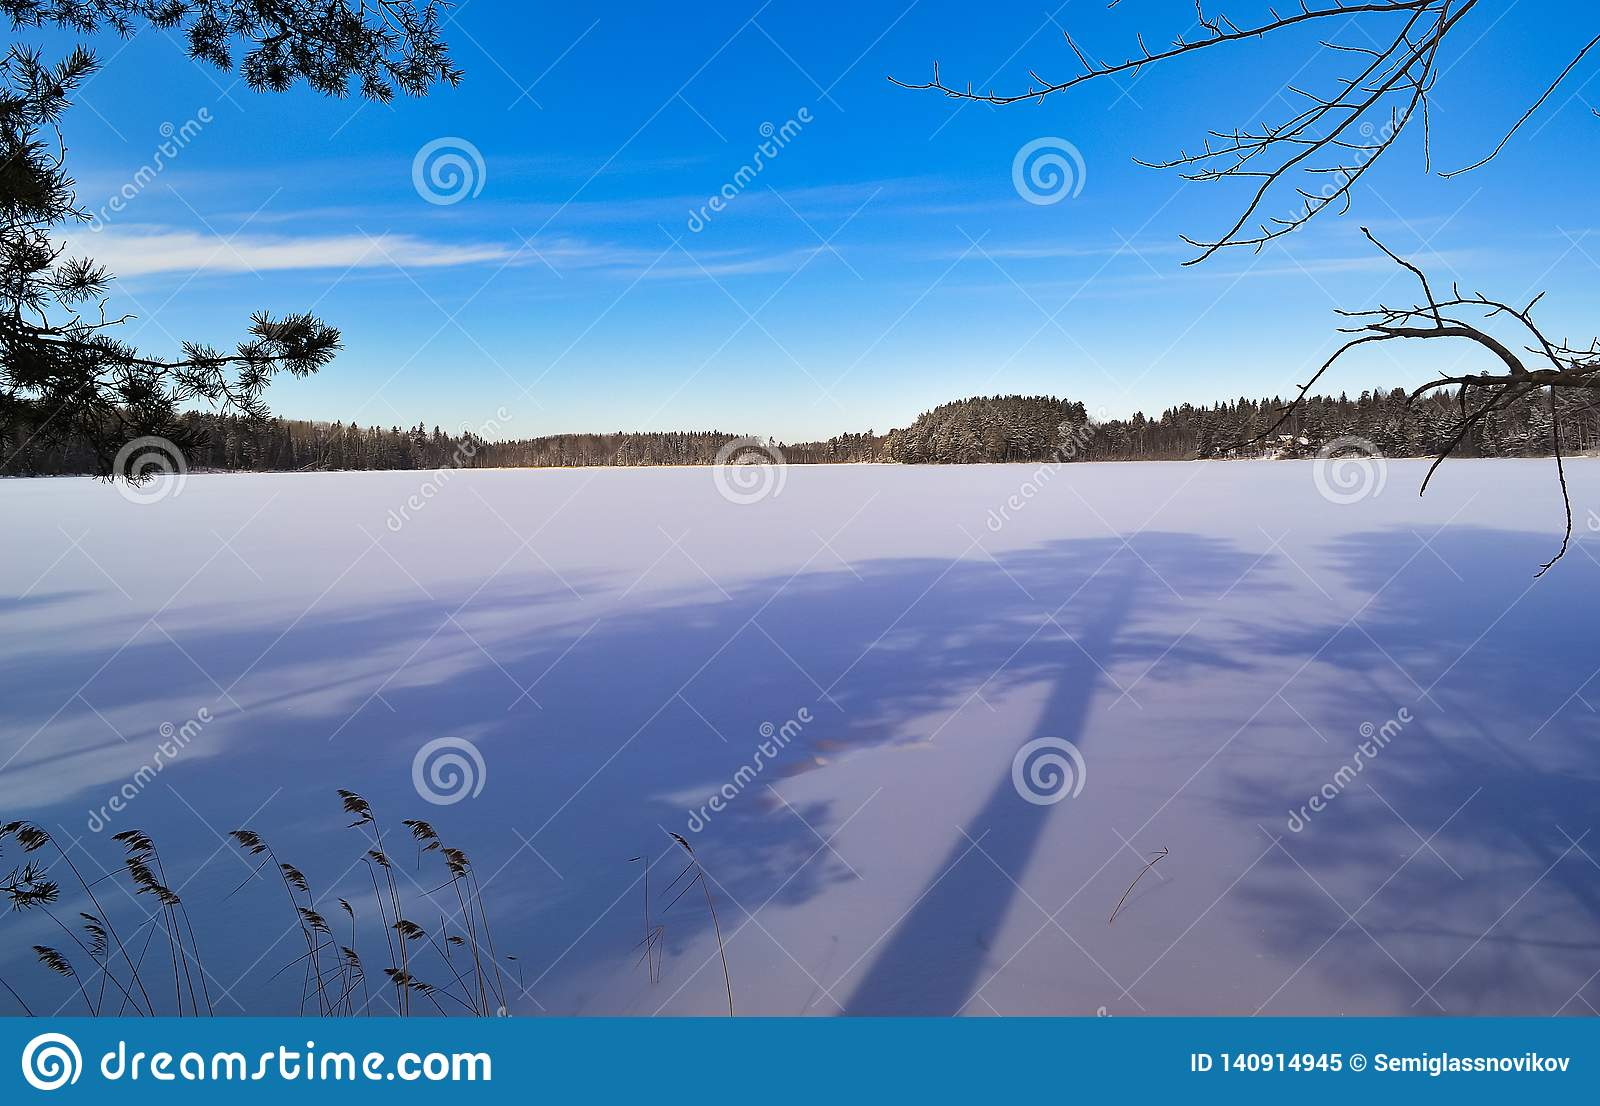 Long shadows on the lake. Winter landscape